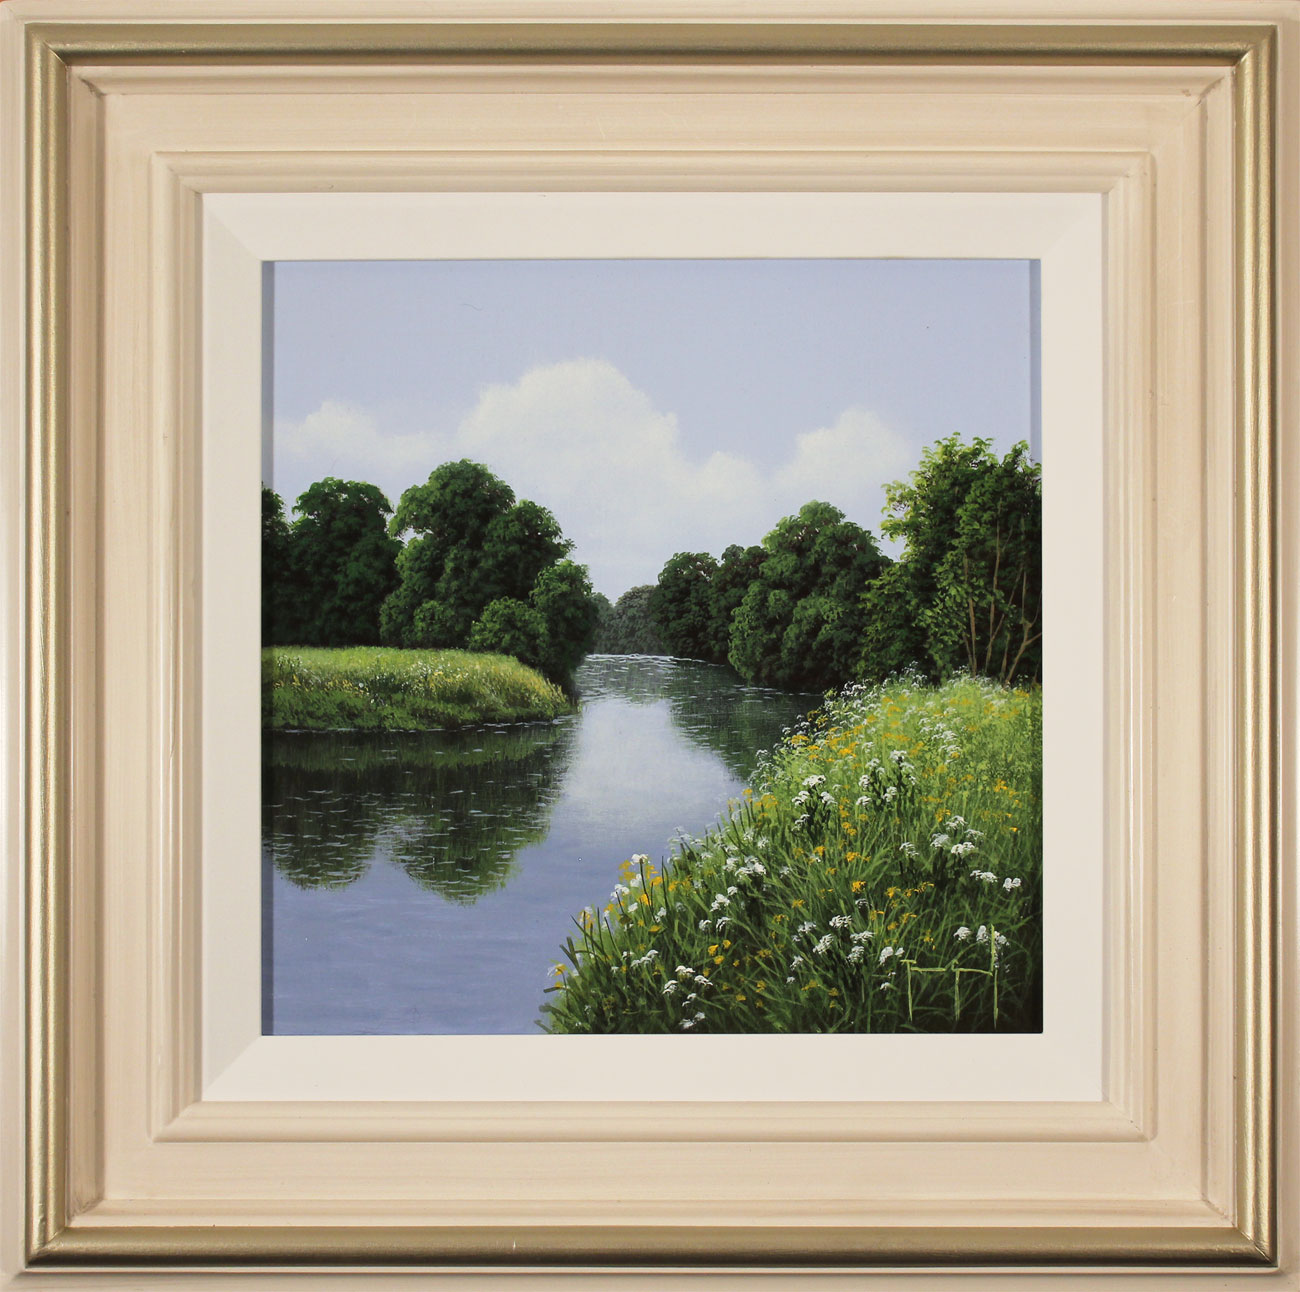 Terry Grundy, Original oil painting on panel, The River Wharfe Click to enlarge